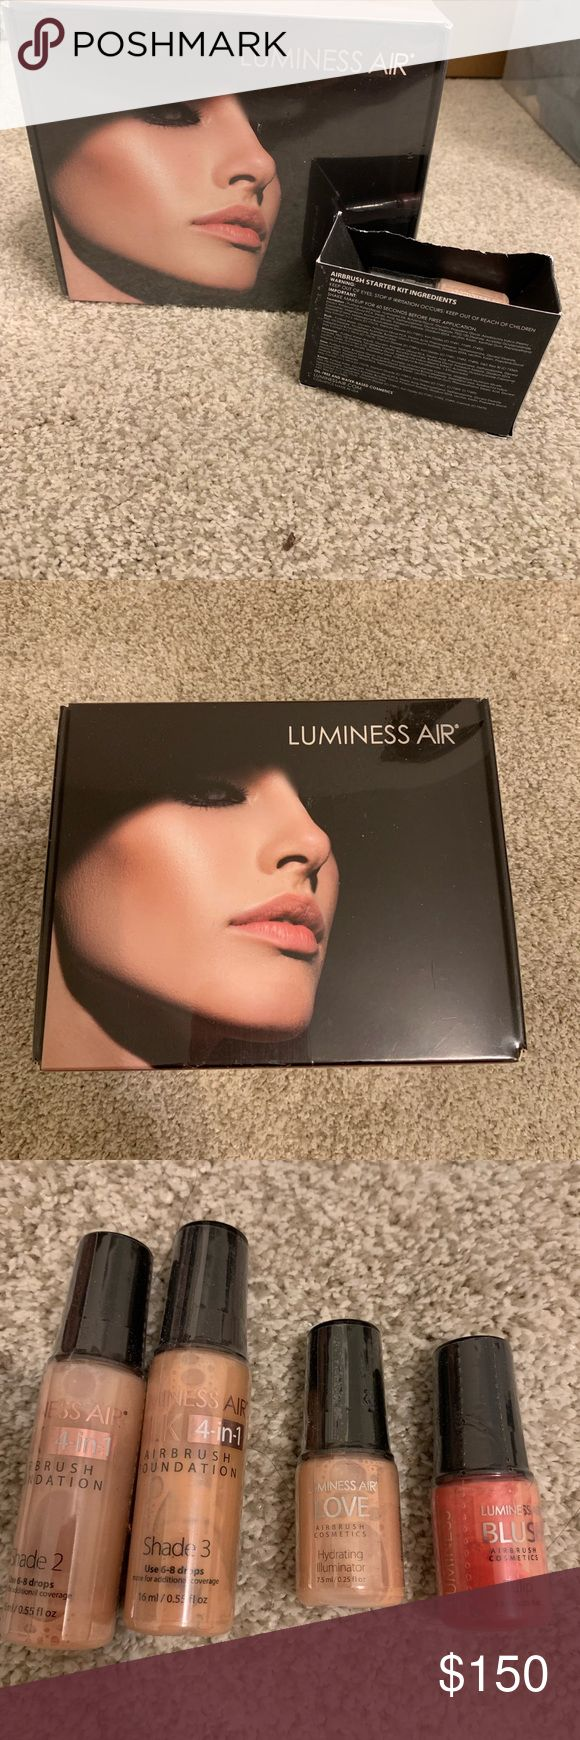 Luminess Air Airbrush makeup system NWT (With images